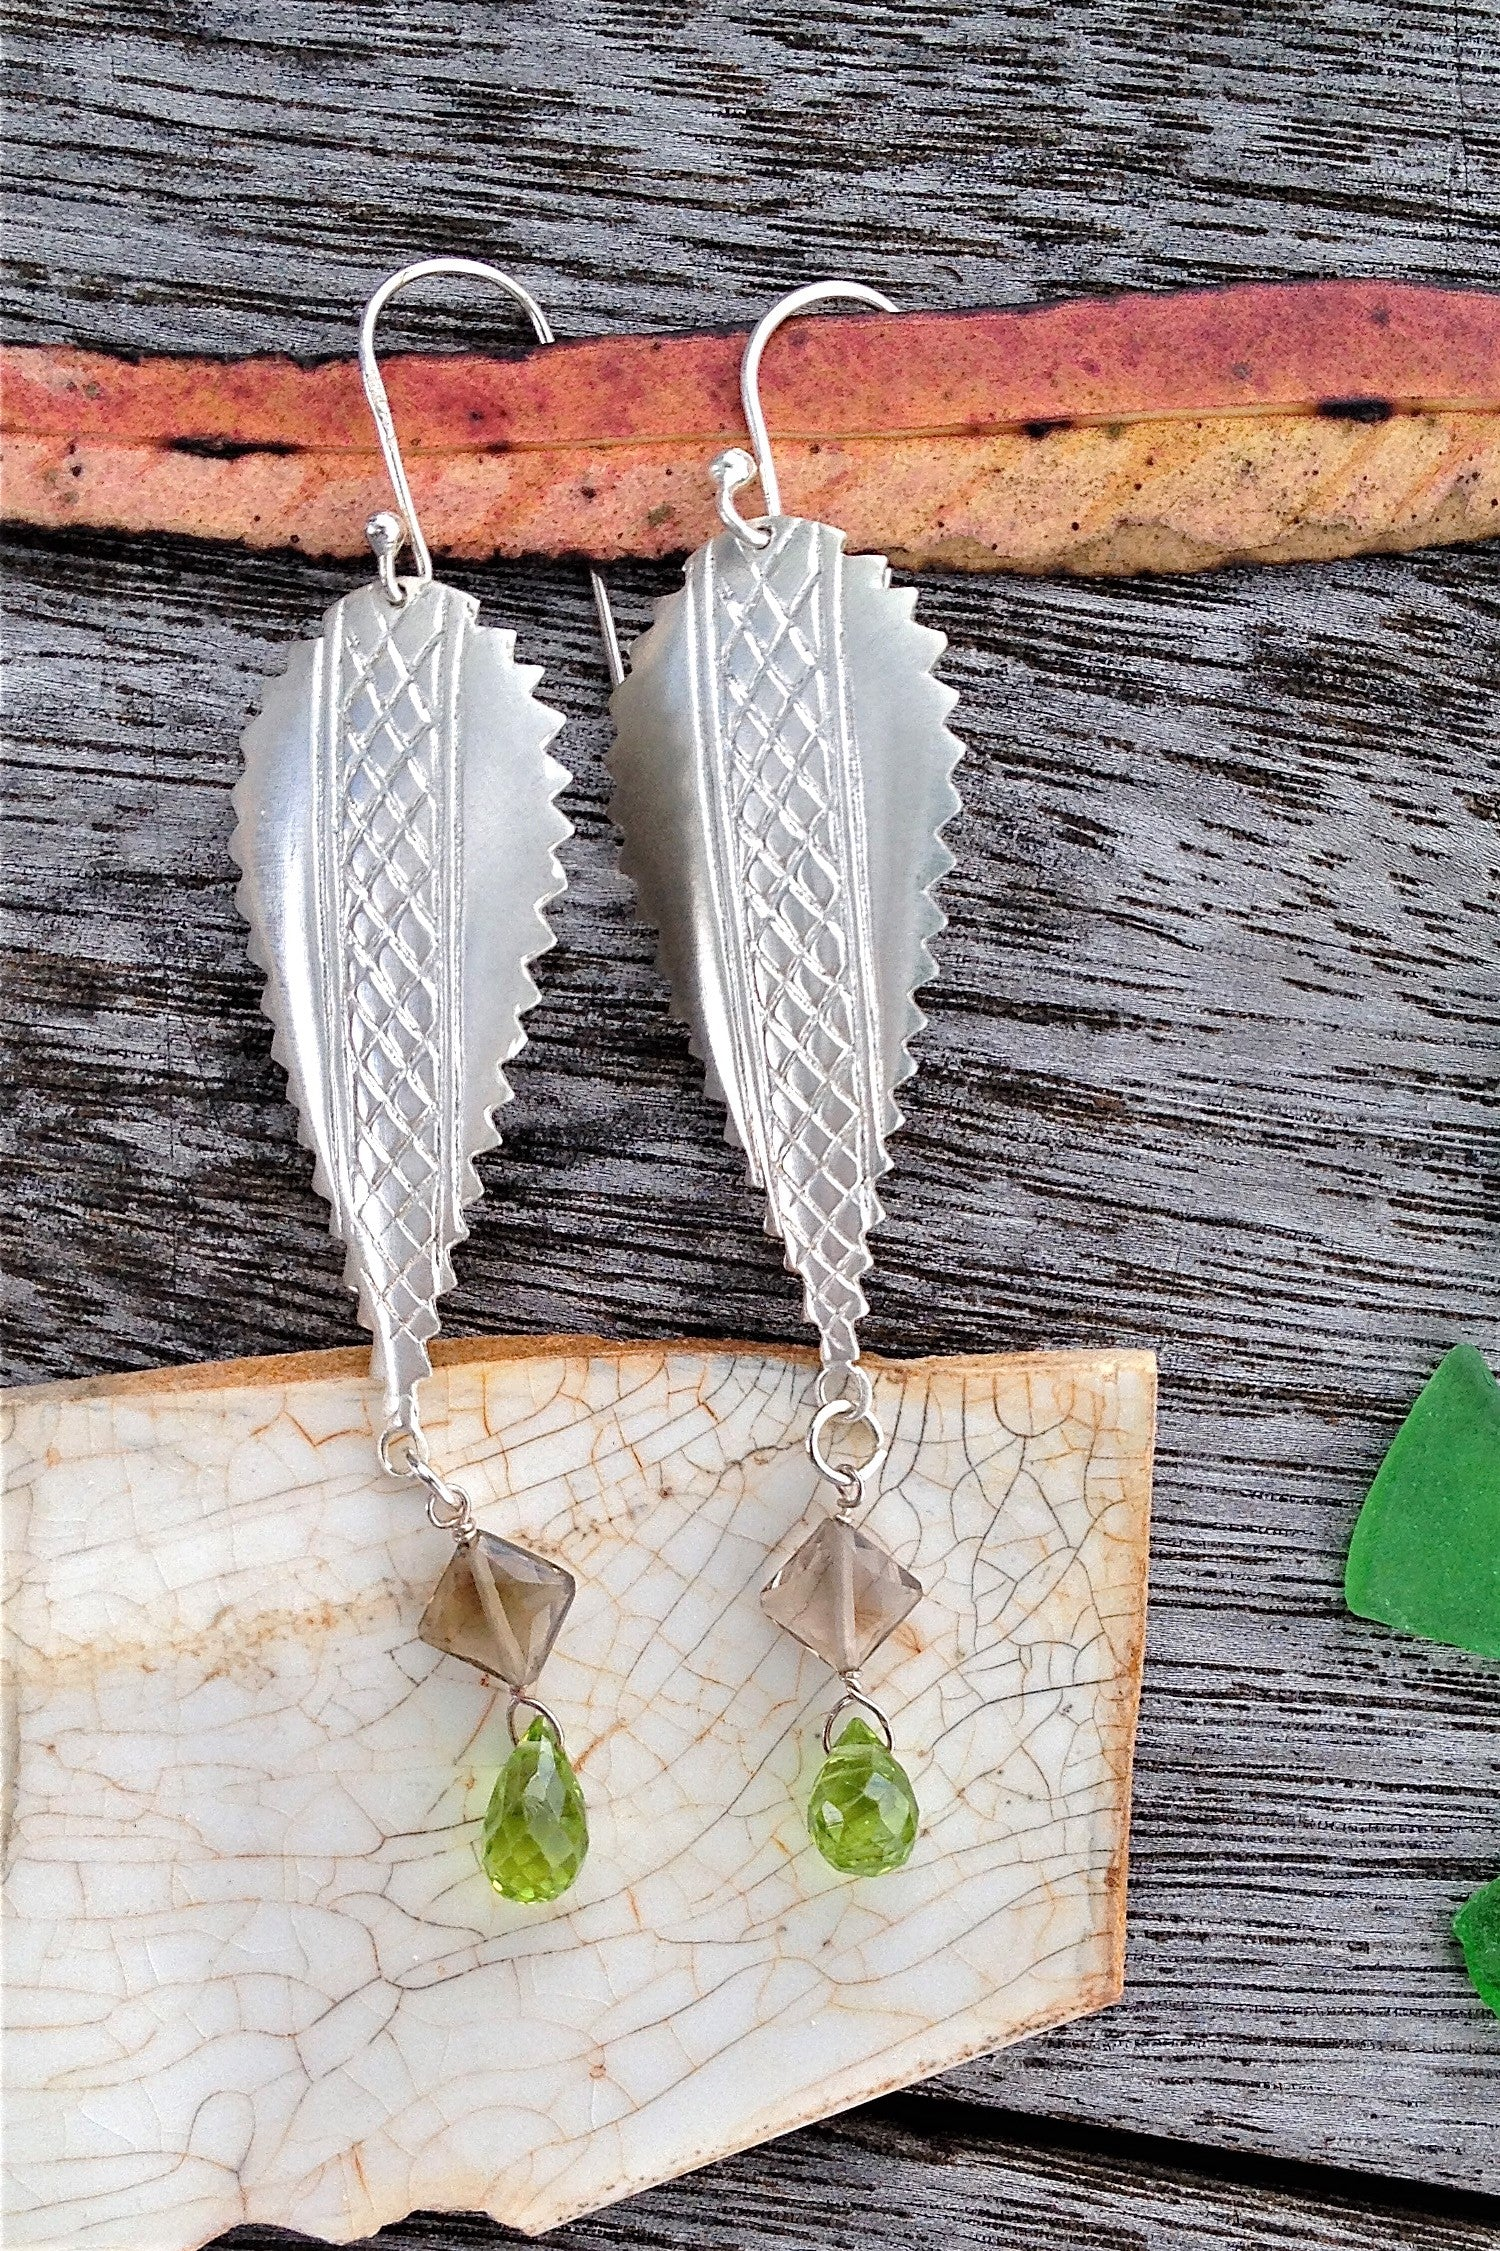 The African inspired design of these earrings was obtained by casting a pair of Mozambique Ebony wood earrings in silver. A Peridot gemstone briolet and a faceted smoky quartz hang from the base.